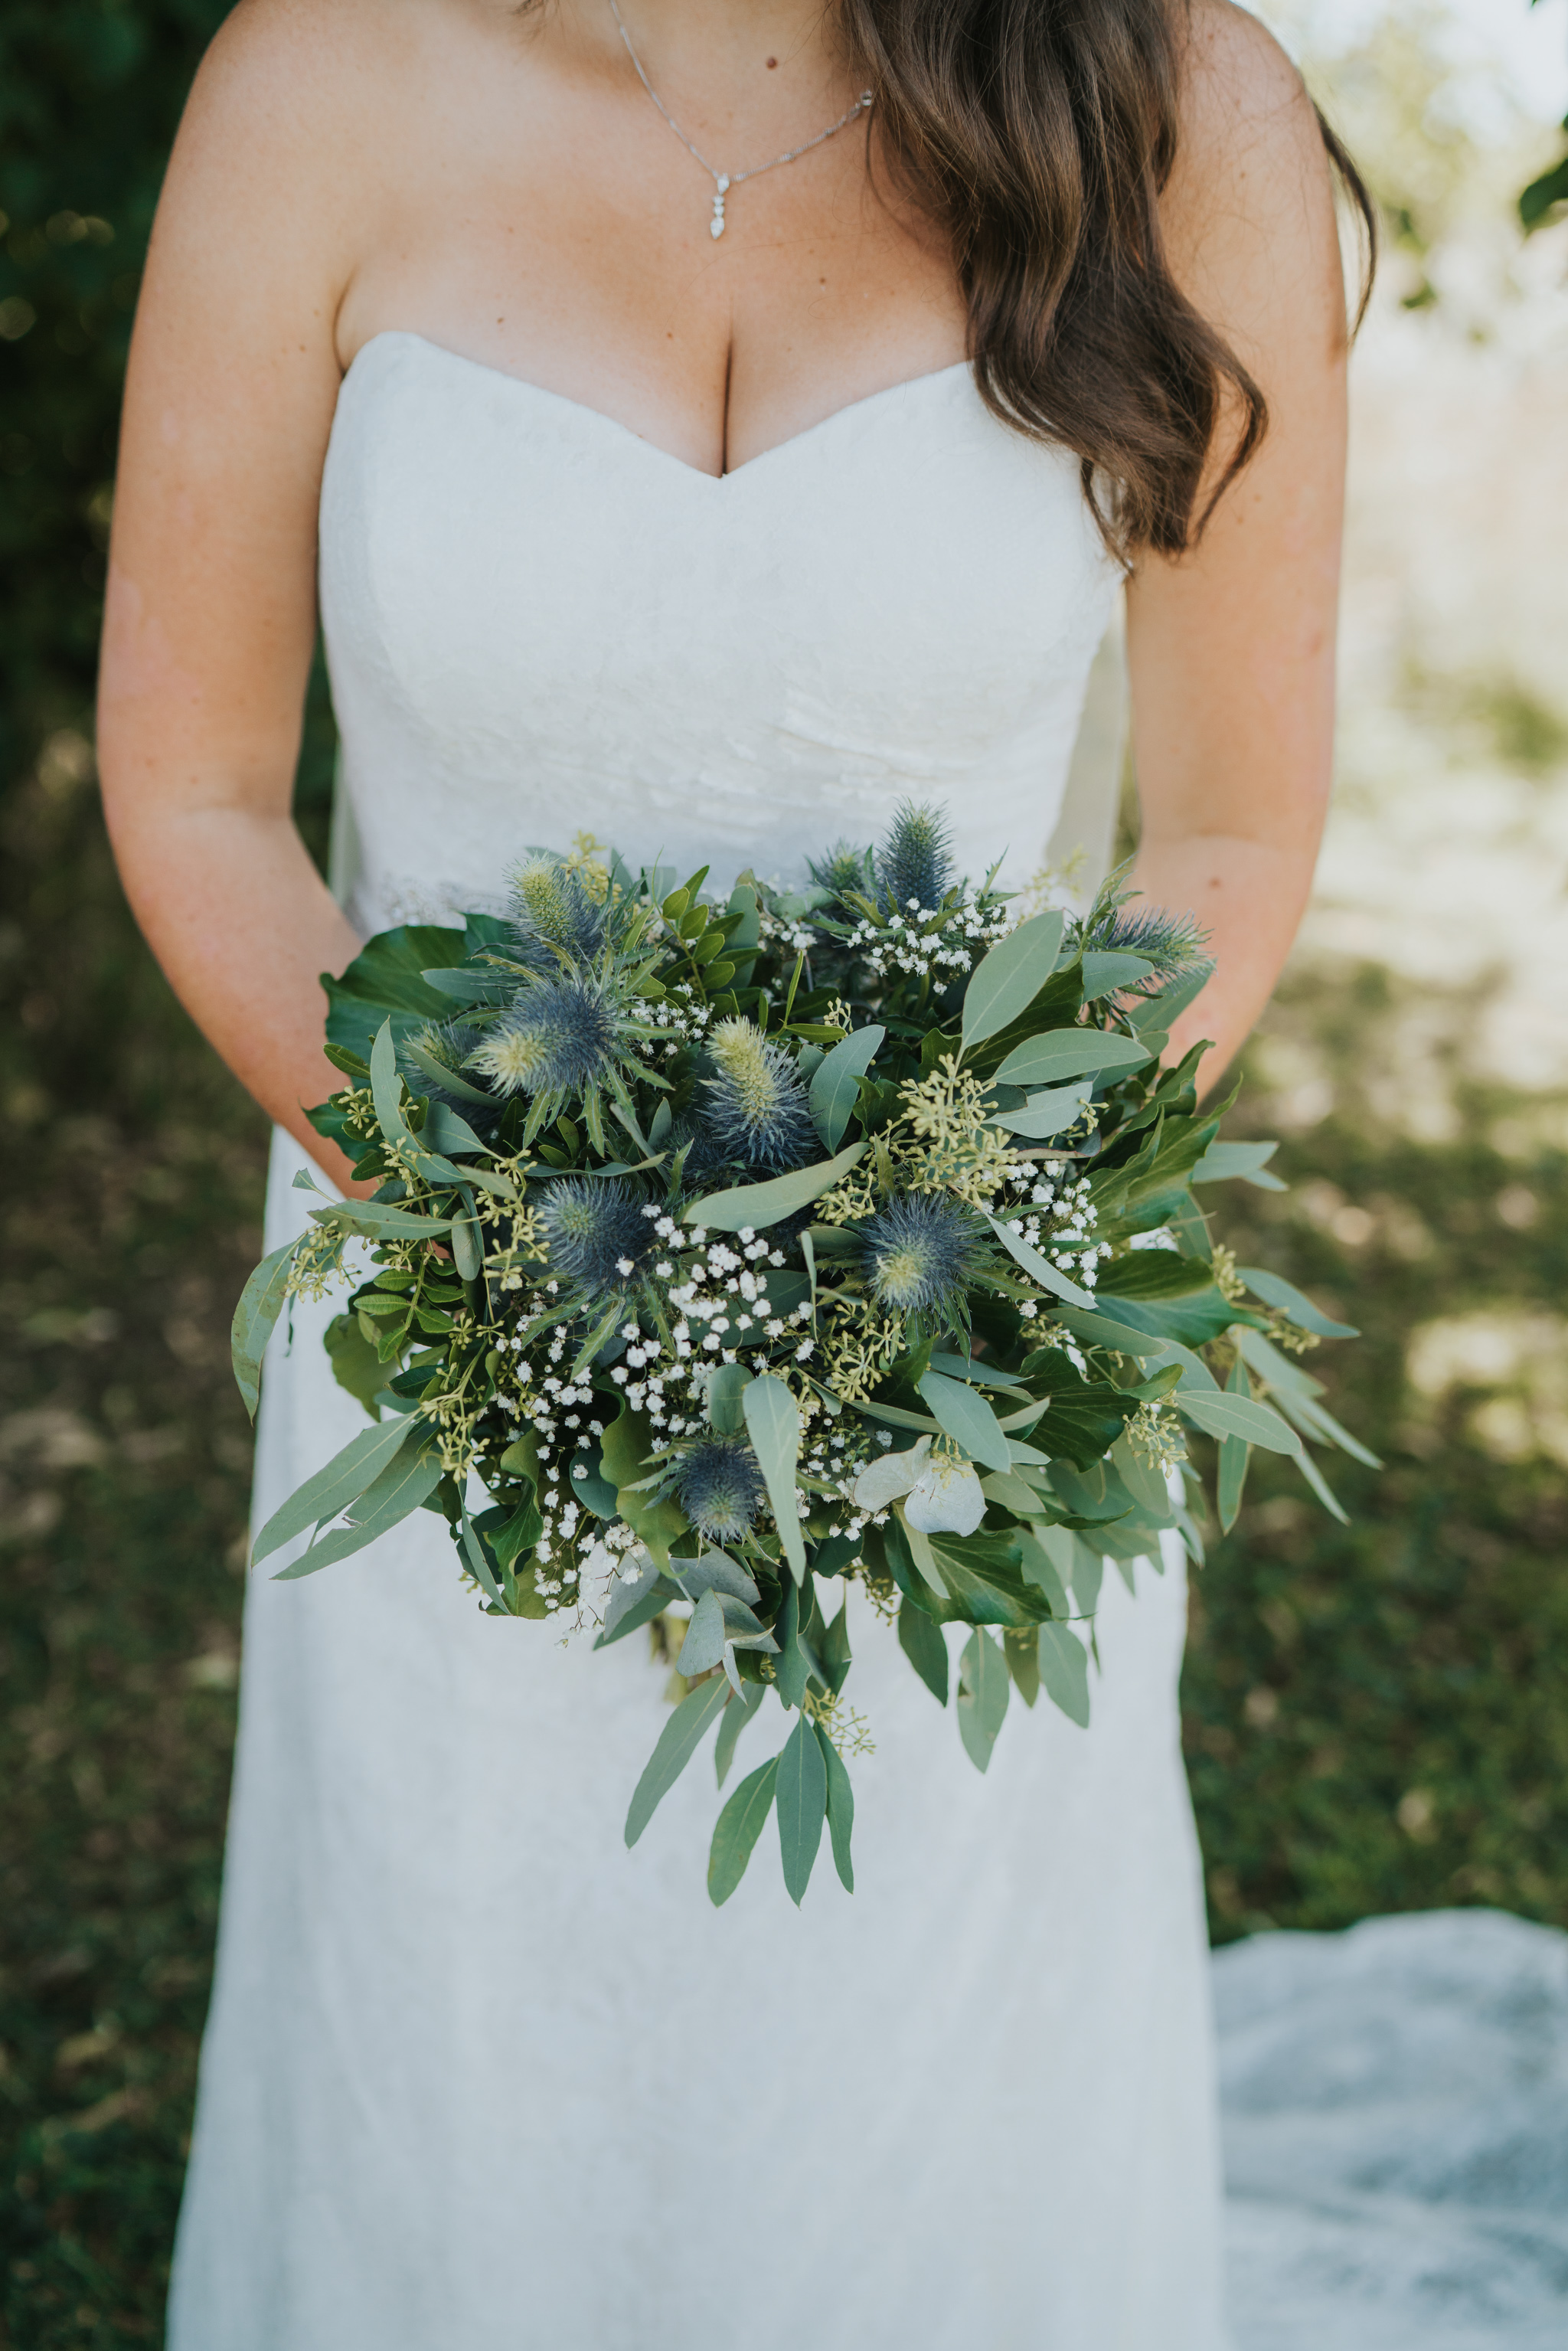 Sophie-Christian-Prested-Hall-DIY-Boho-Outdoor-Wedding-Grace-Elizabeth-Alternative-Wedding-Photographer-Colchester-Essex (77 of 113).jpg